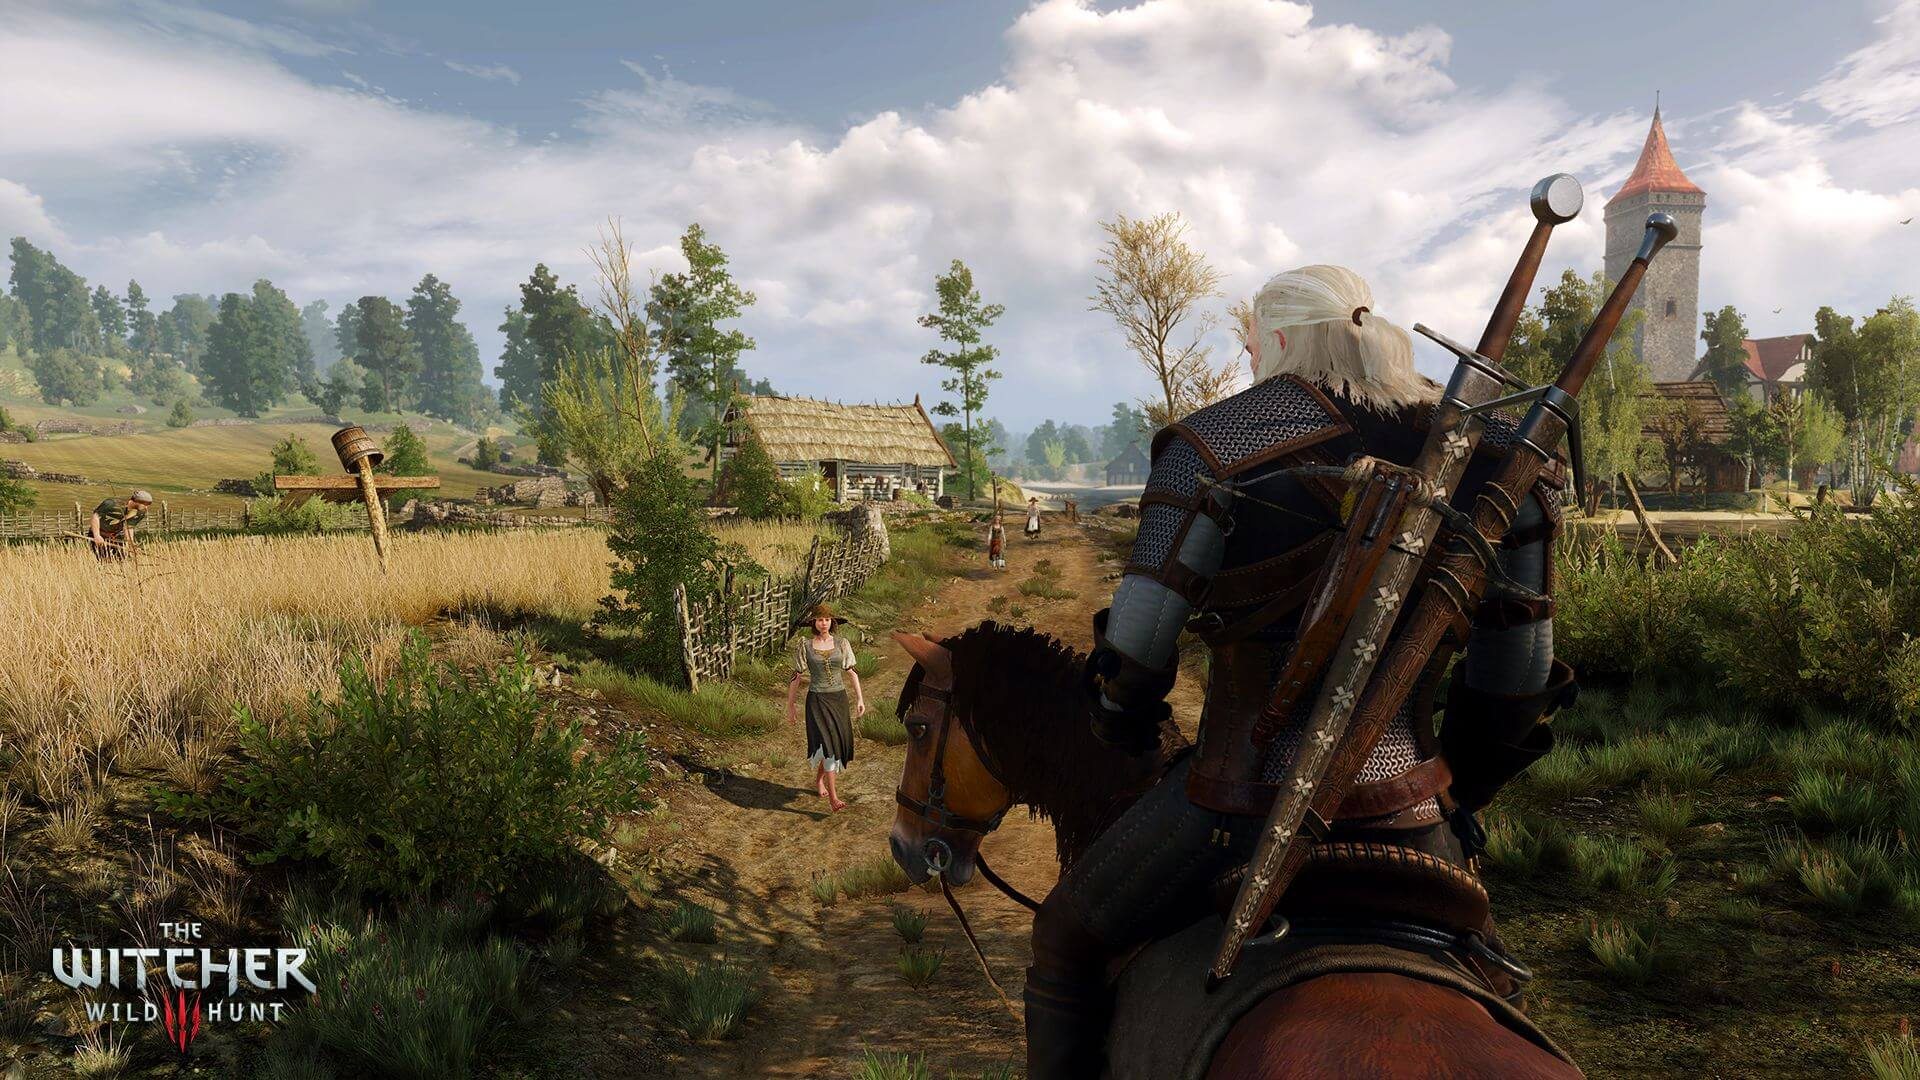 The Witcher 3: Wild Hunt Countryside Village Screenshot